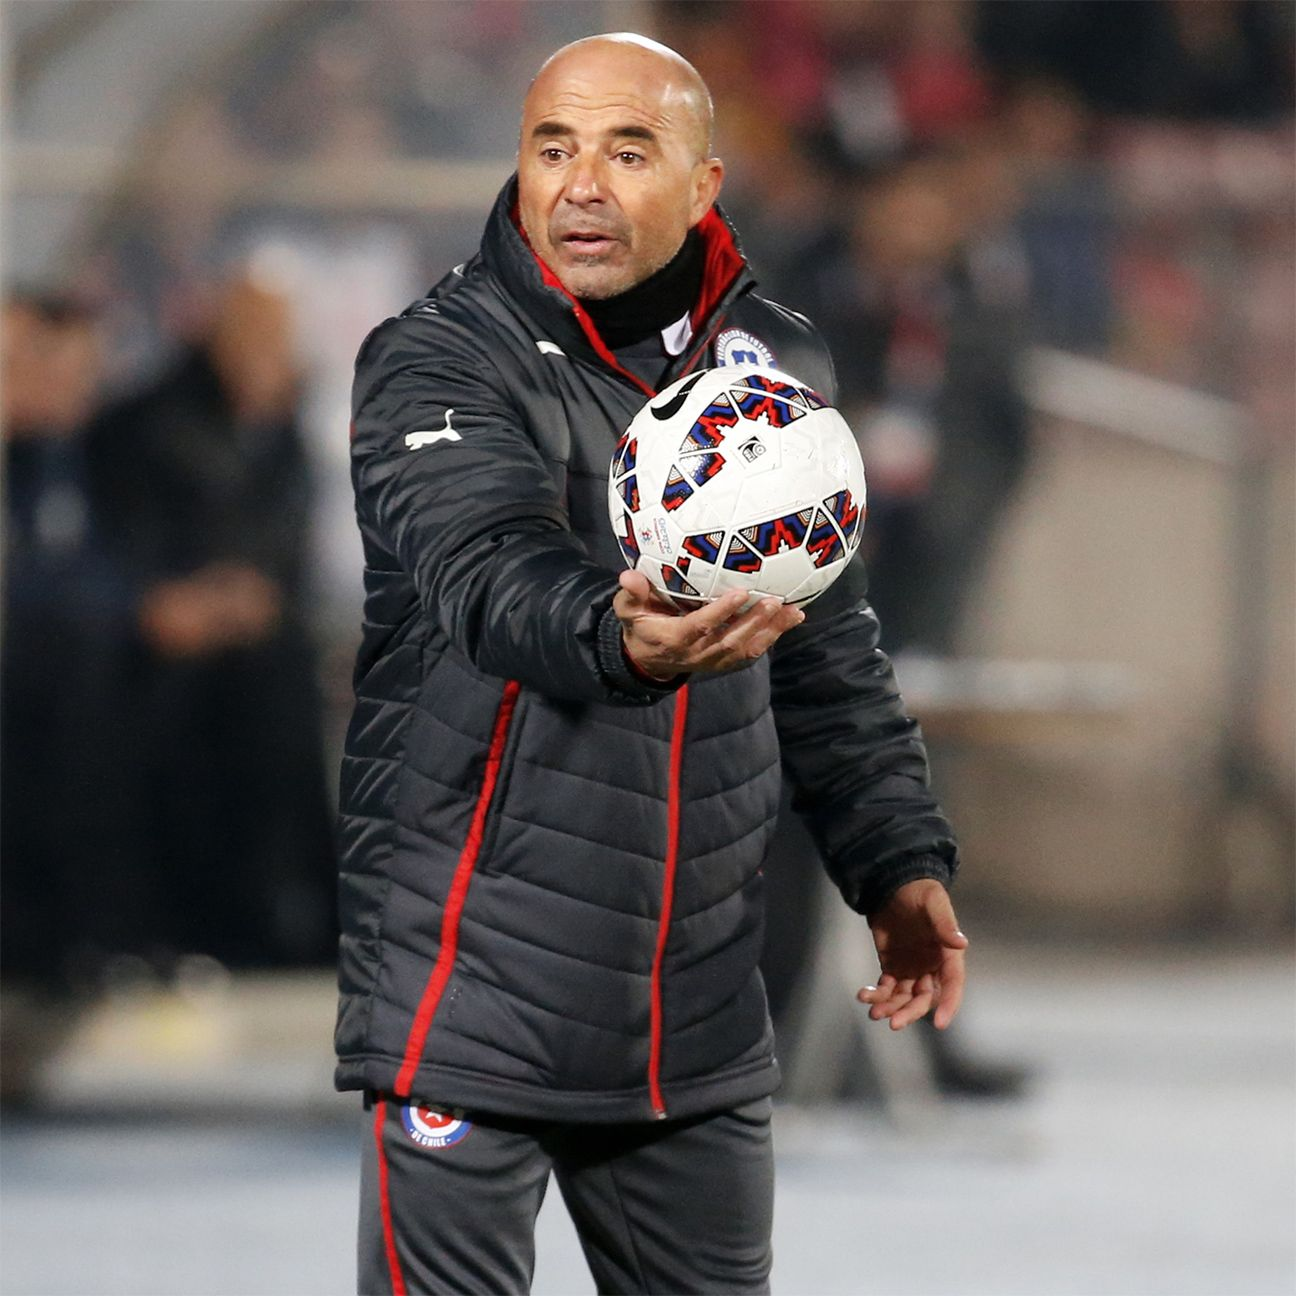 Chile head coach Jorge Sampaoli's tactics were spot against Argentina in the Copa America final.